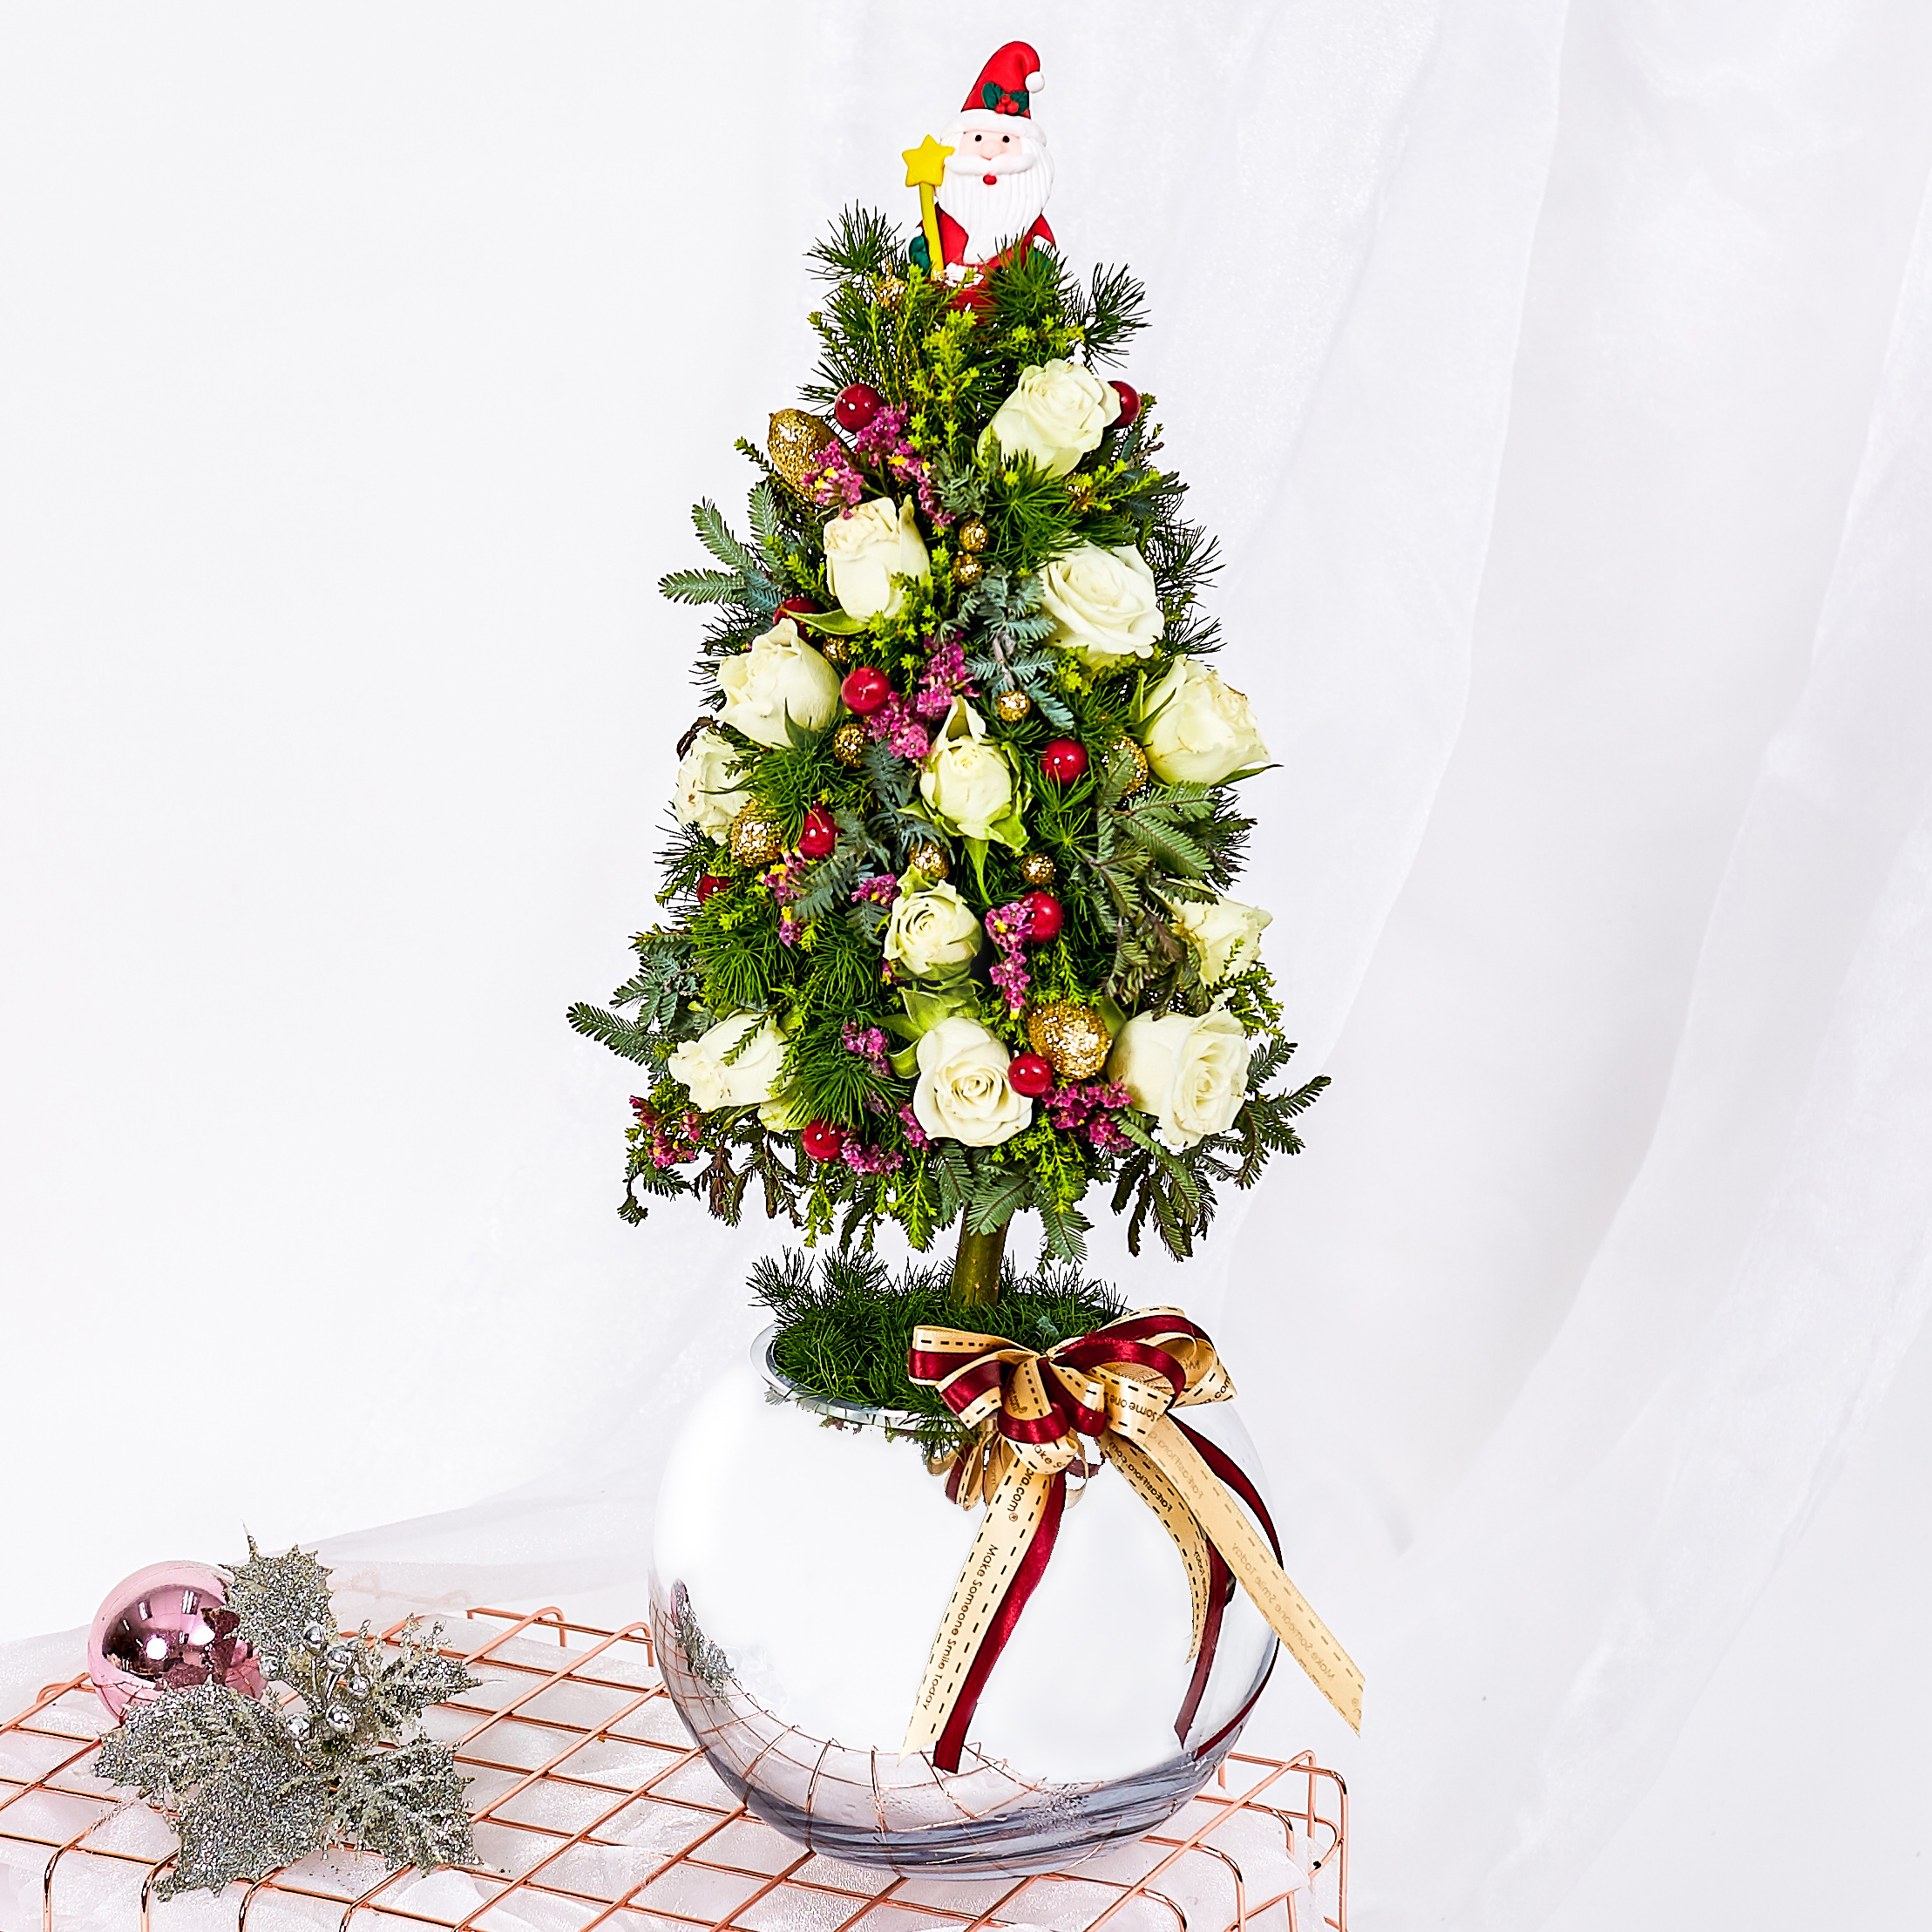 Christmas Collection is here. Hampers, Flowers and Gift Sets up to $50 off + FREE DELIVERY for orders before 30 Nov